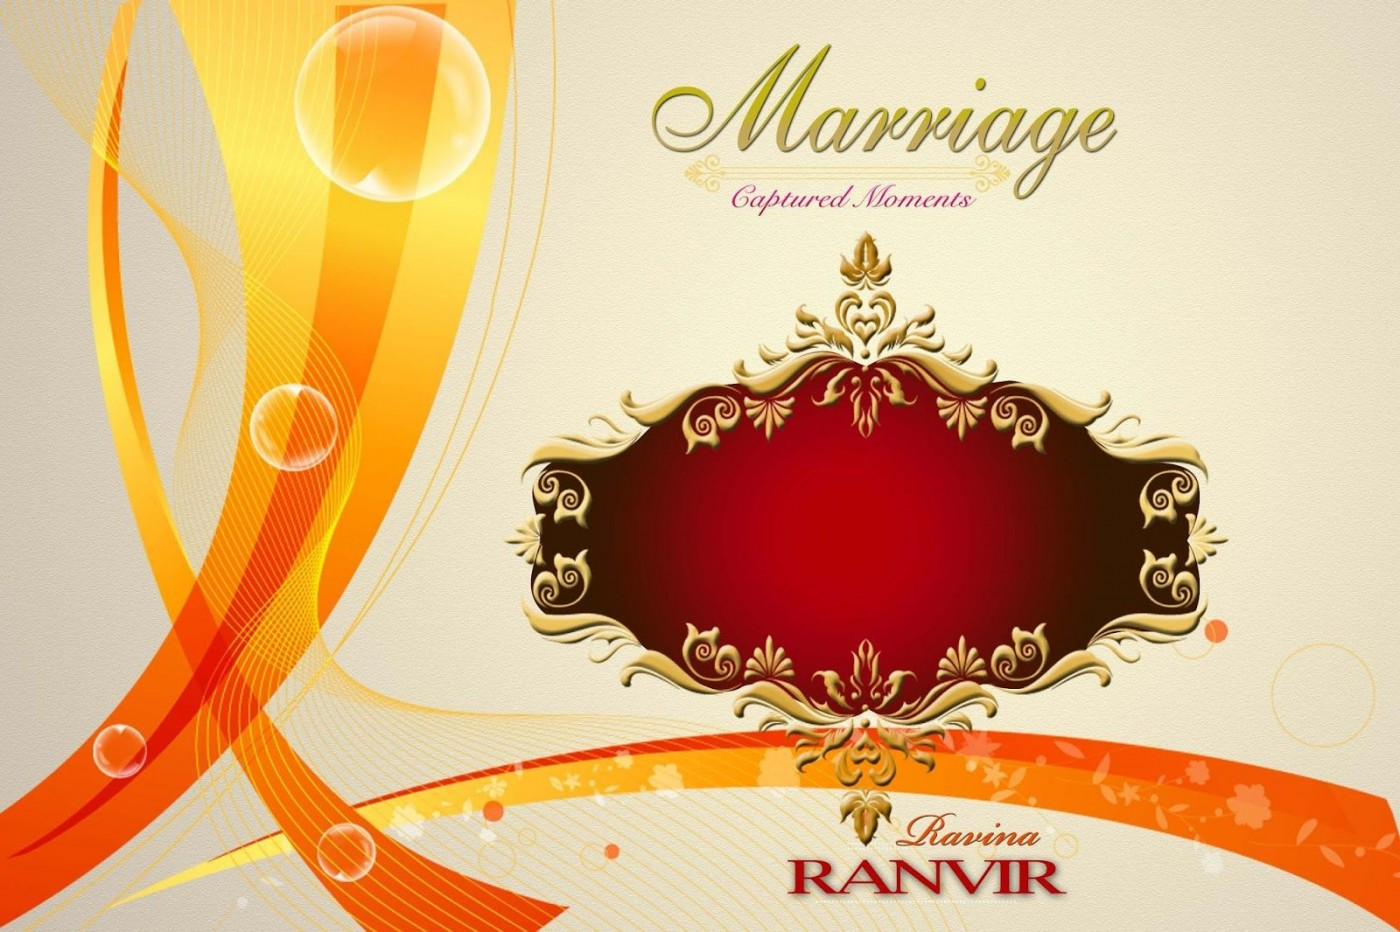 005 Best Wedding Cd Cover Design Template Free Download Concept 1400